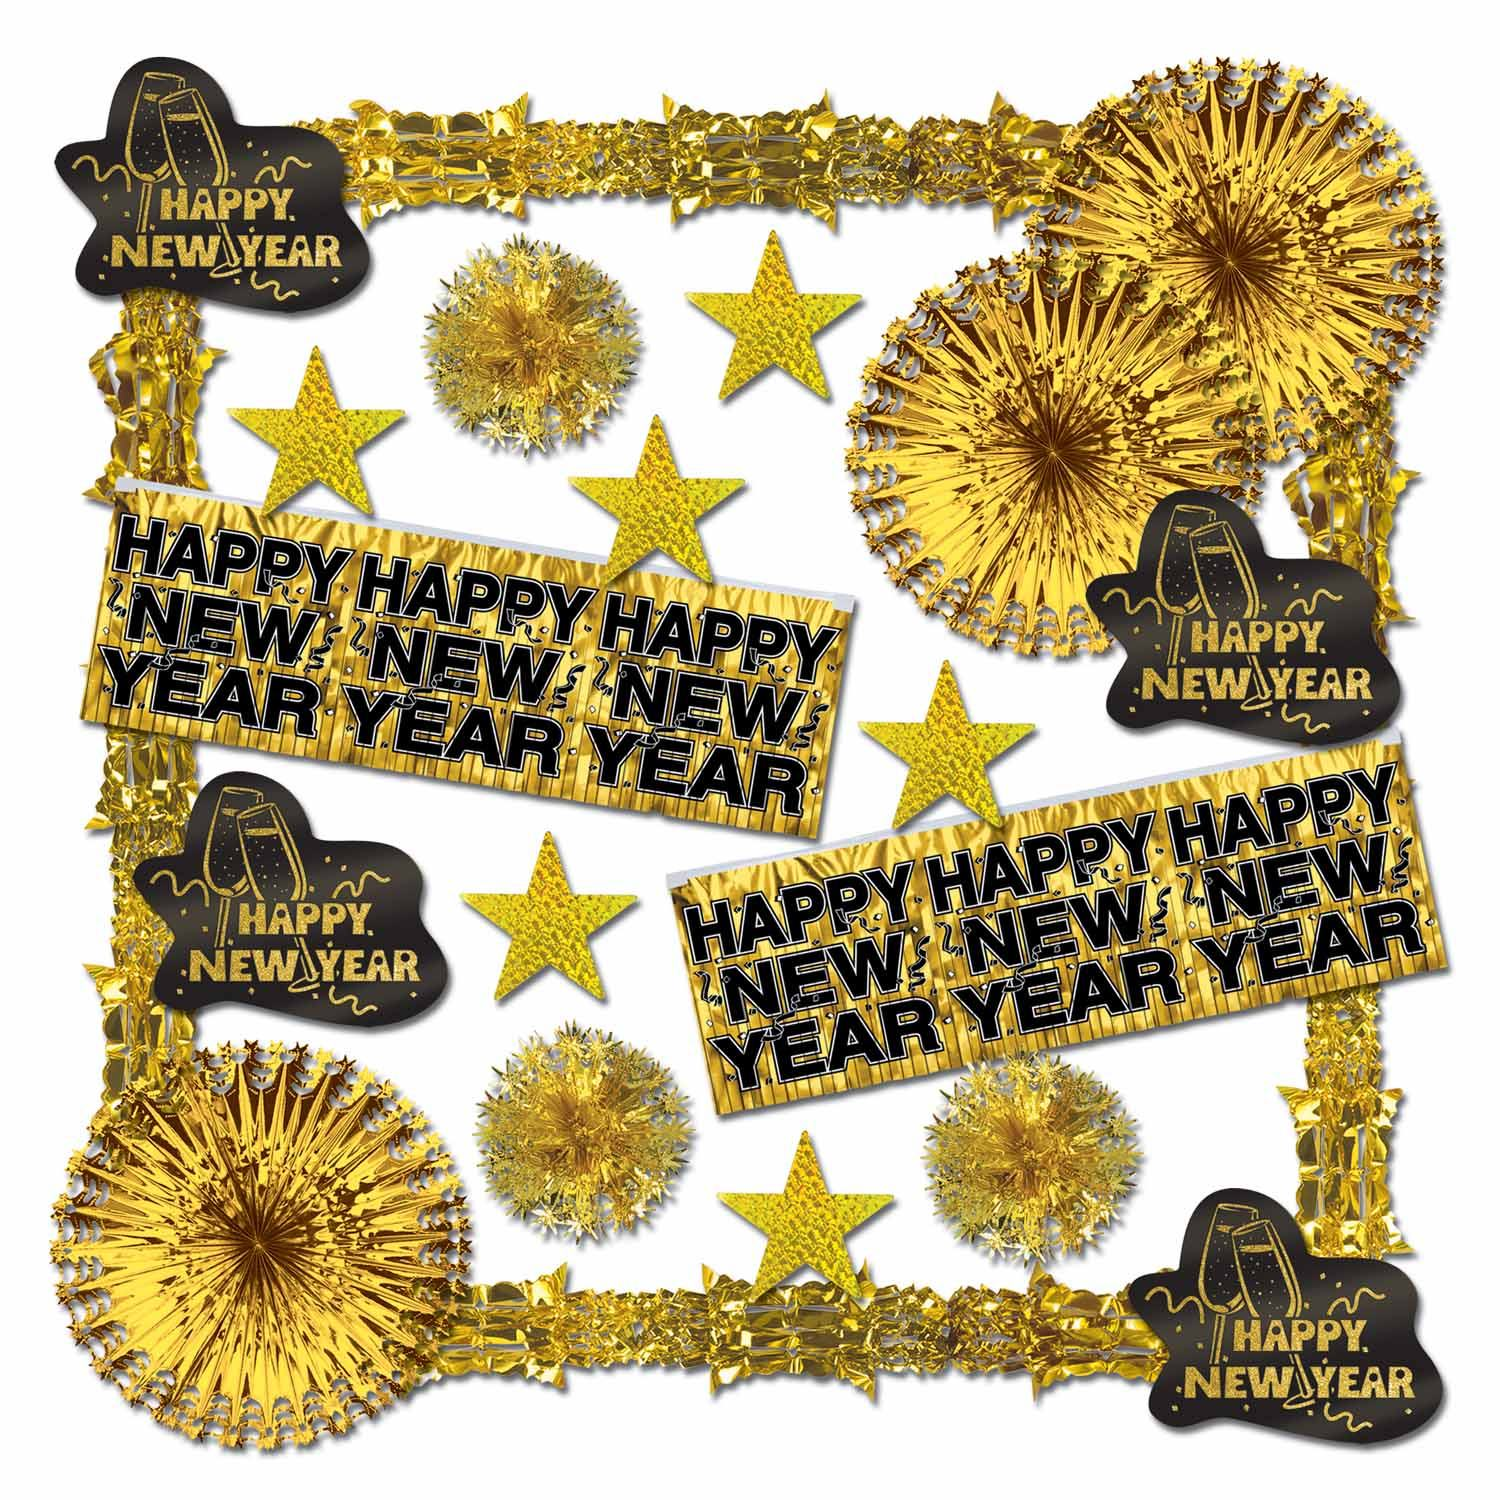 Glistening Gold New Year Decorating Kit - 22 Pieces Decorating kit, Decor, Party Supplies, Wholesale, Inexpensive, New Years Eve, Bulk Pack, Black and Gold, Gold, Hanging Decor, Decorations, Party